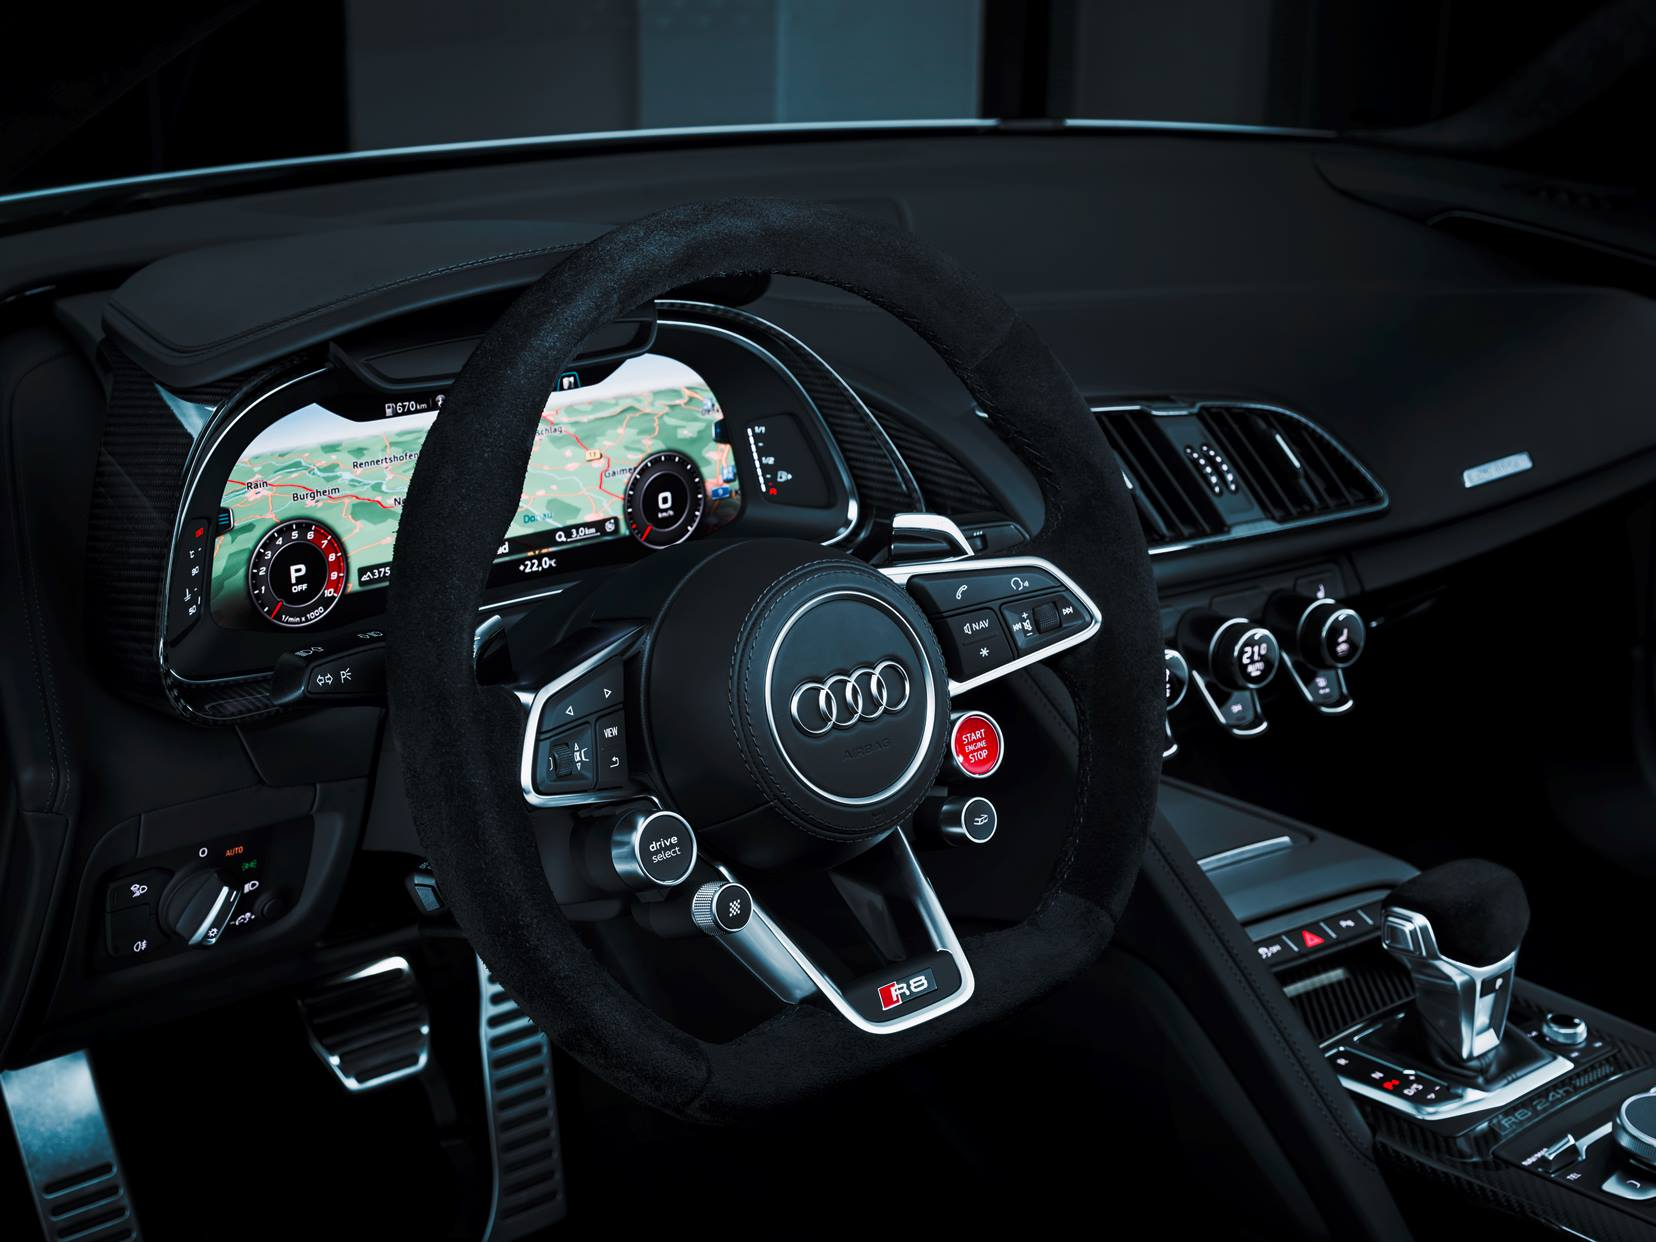 Audi R8 V10 selection 24h - 2016 - steering wheel / volant